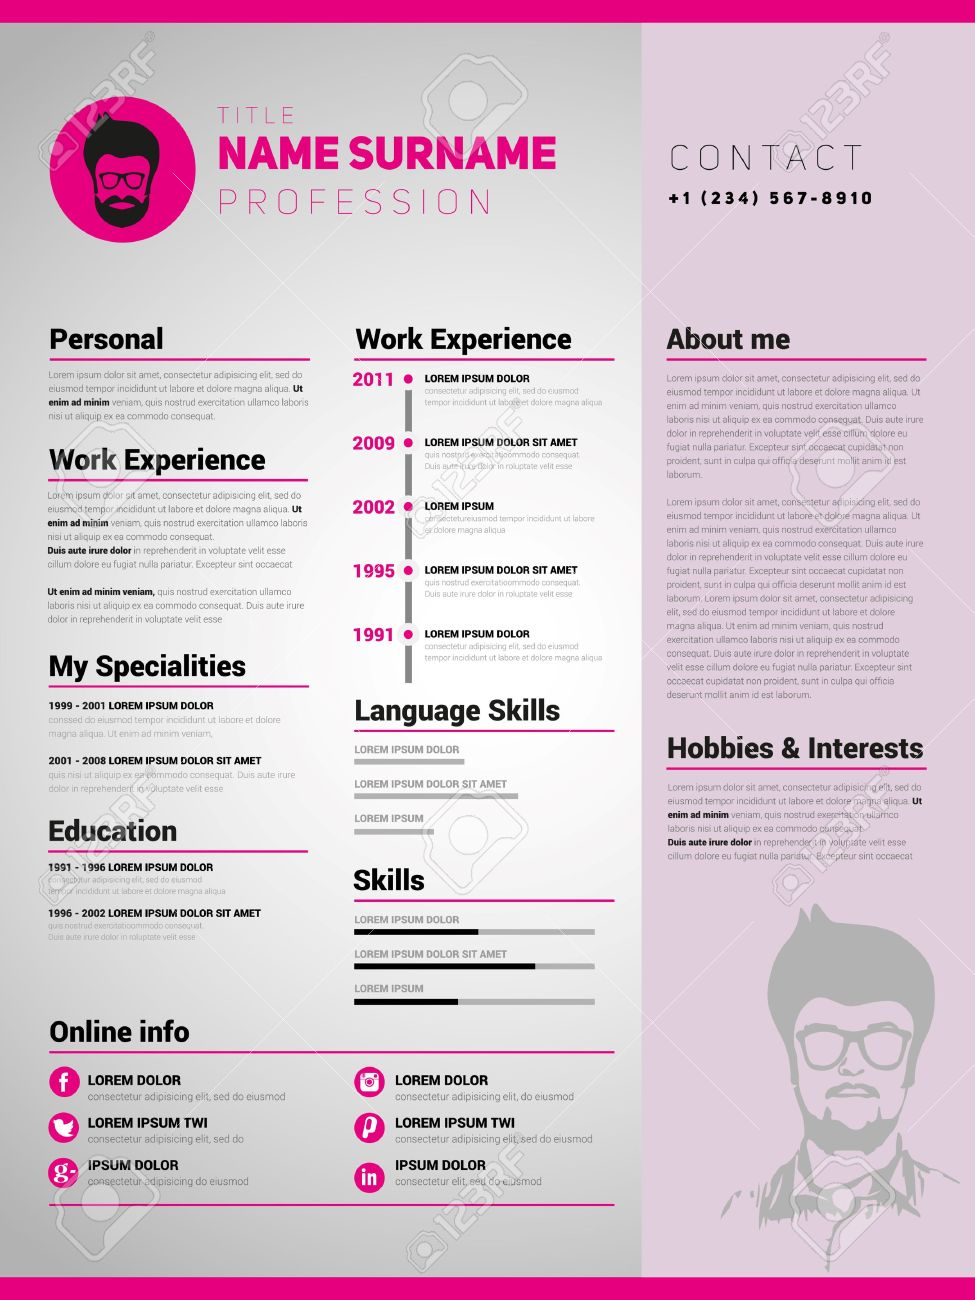 resume template minimalist cv vector design stock vector 44831849 - Minimalist Resume Template